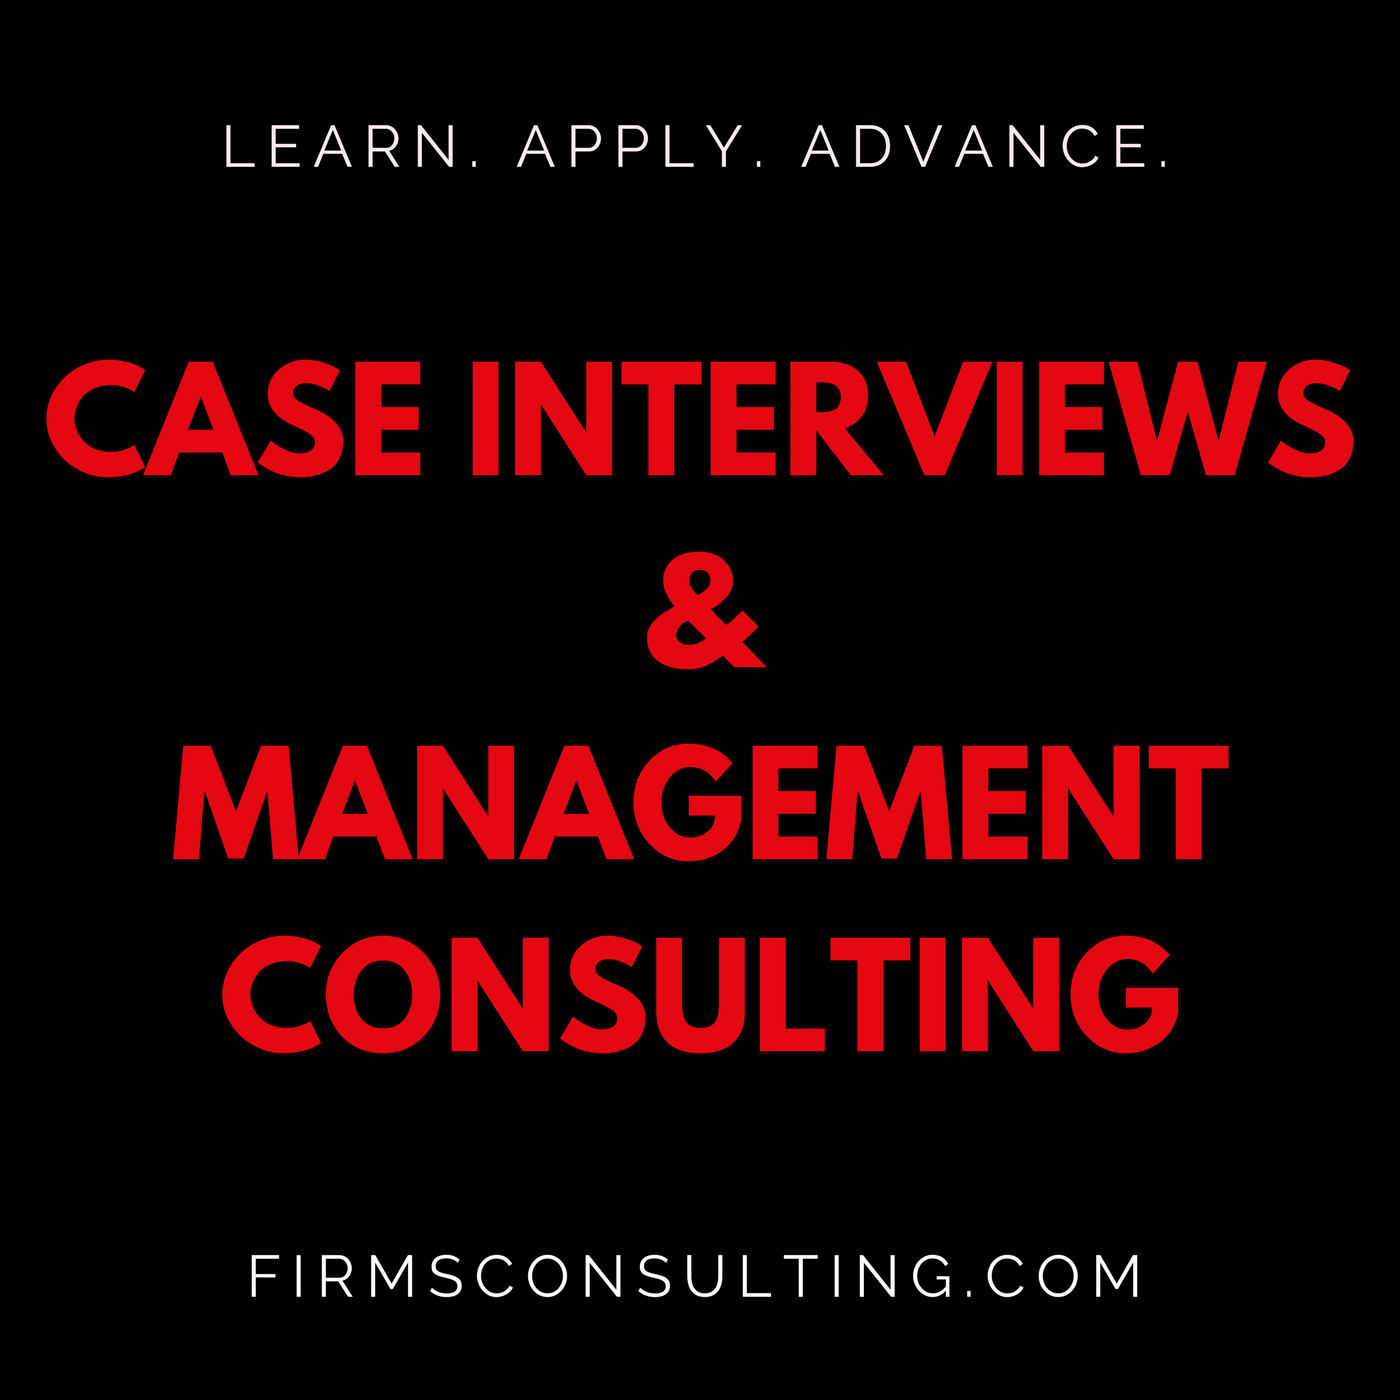 Case Interview Preparation & Management Consulting | Strategy